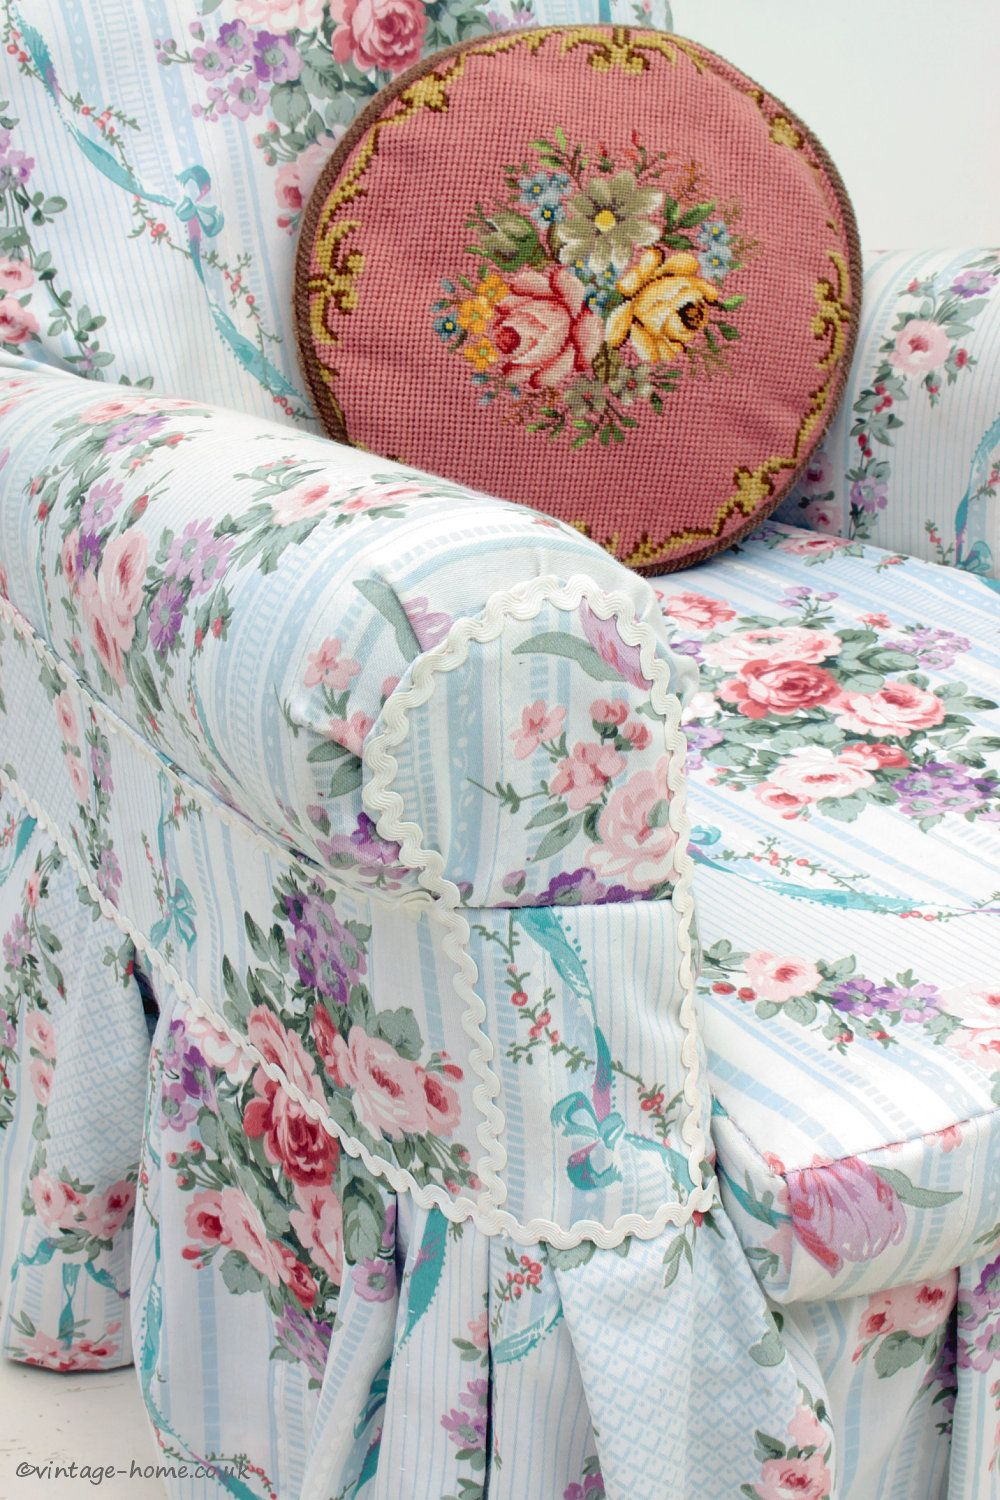 Vintage Home Shop - Pretty Vintage Roses and Ribbons Fabric Covered ...